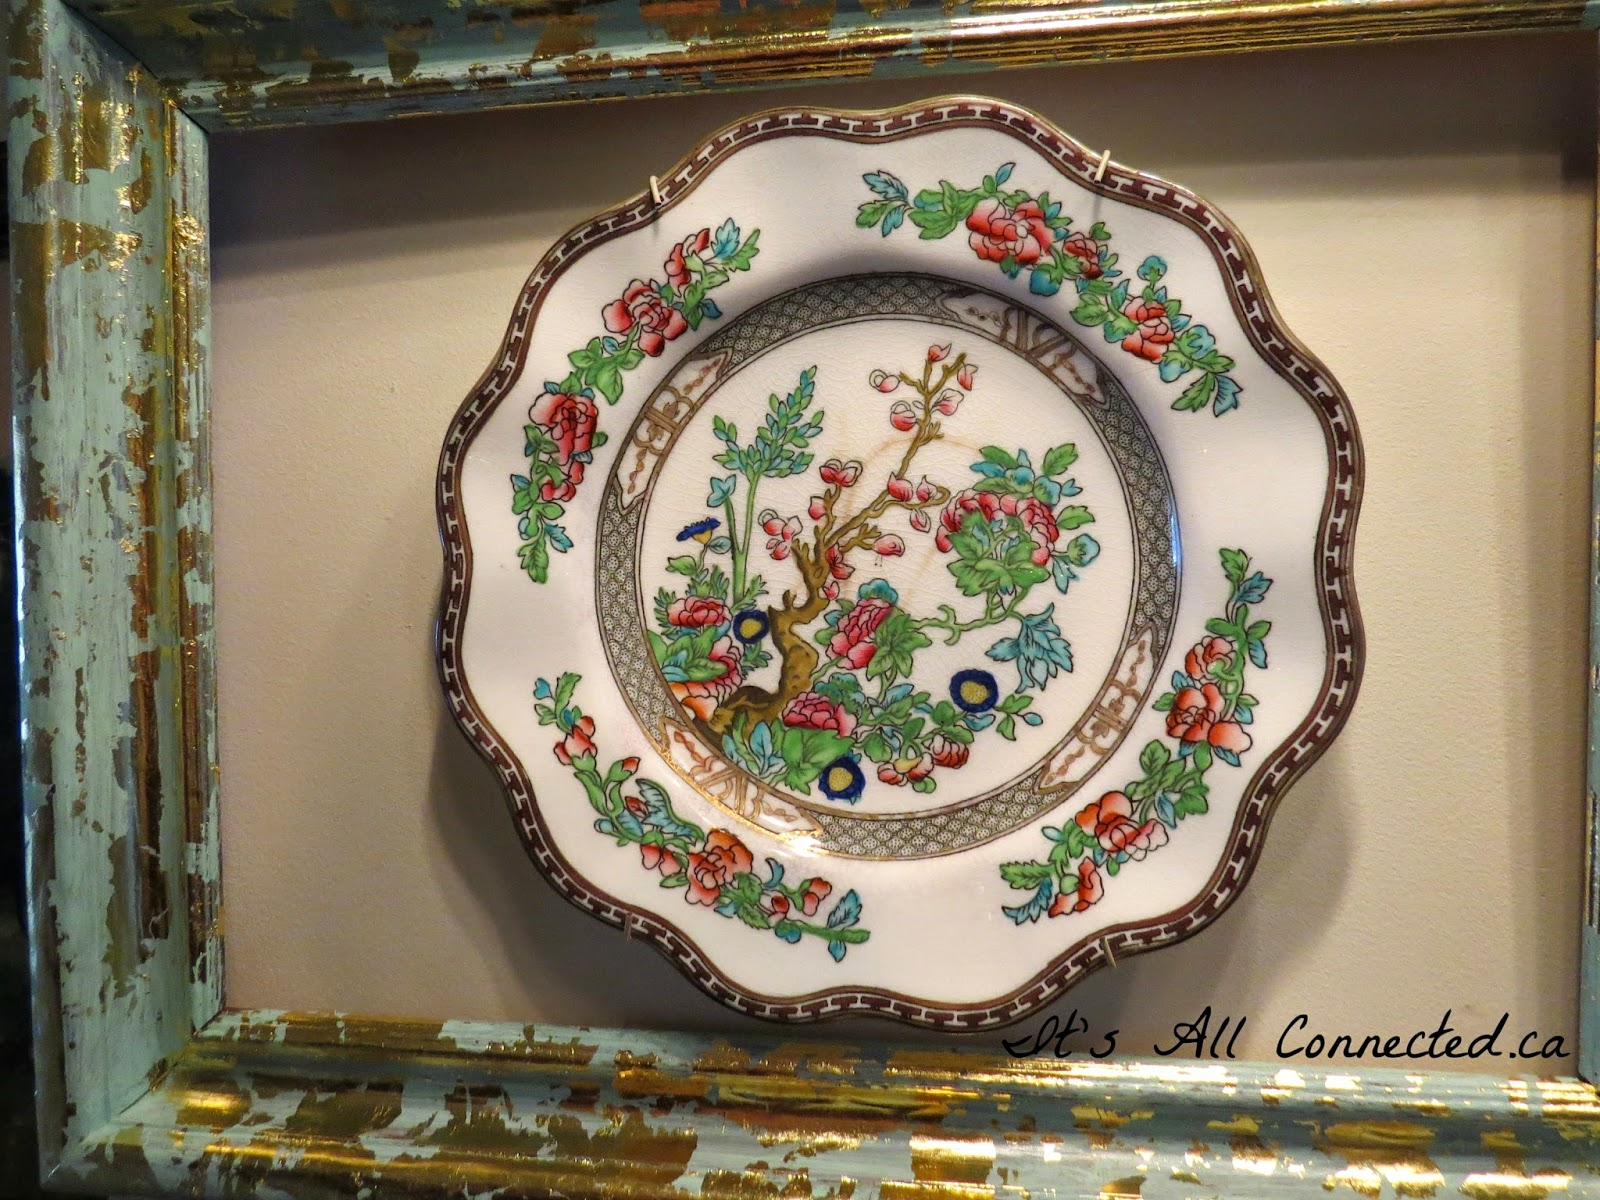 It's All Connected: Framing A Decorative Plate